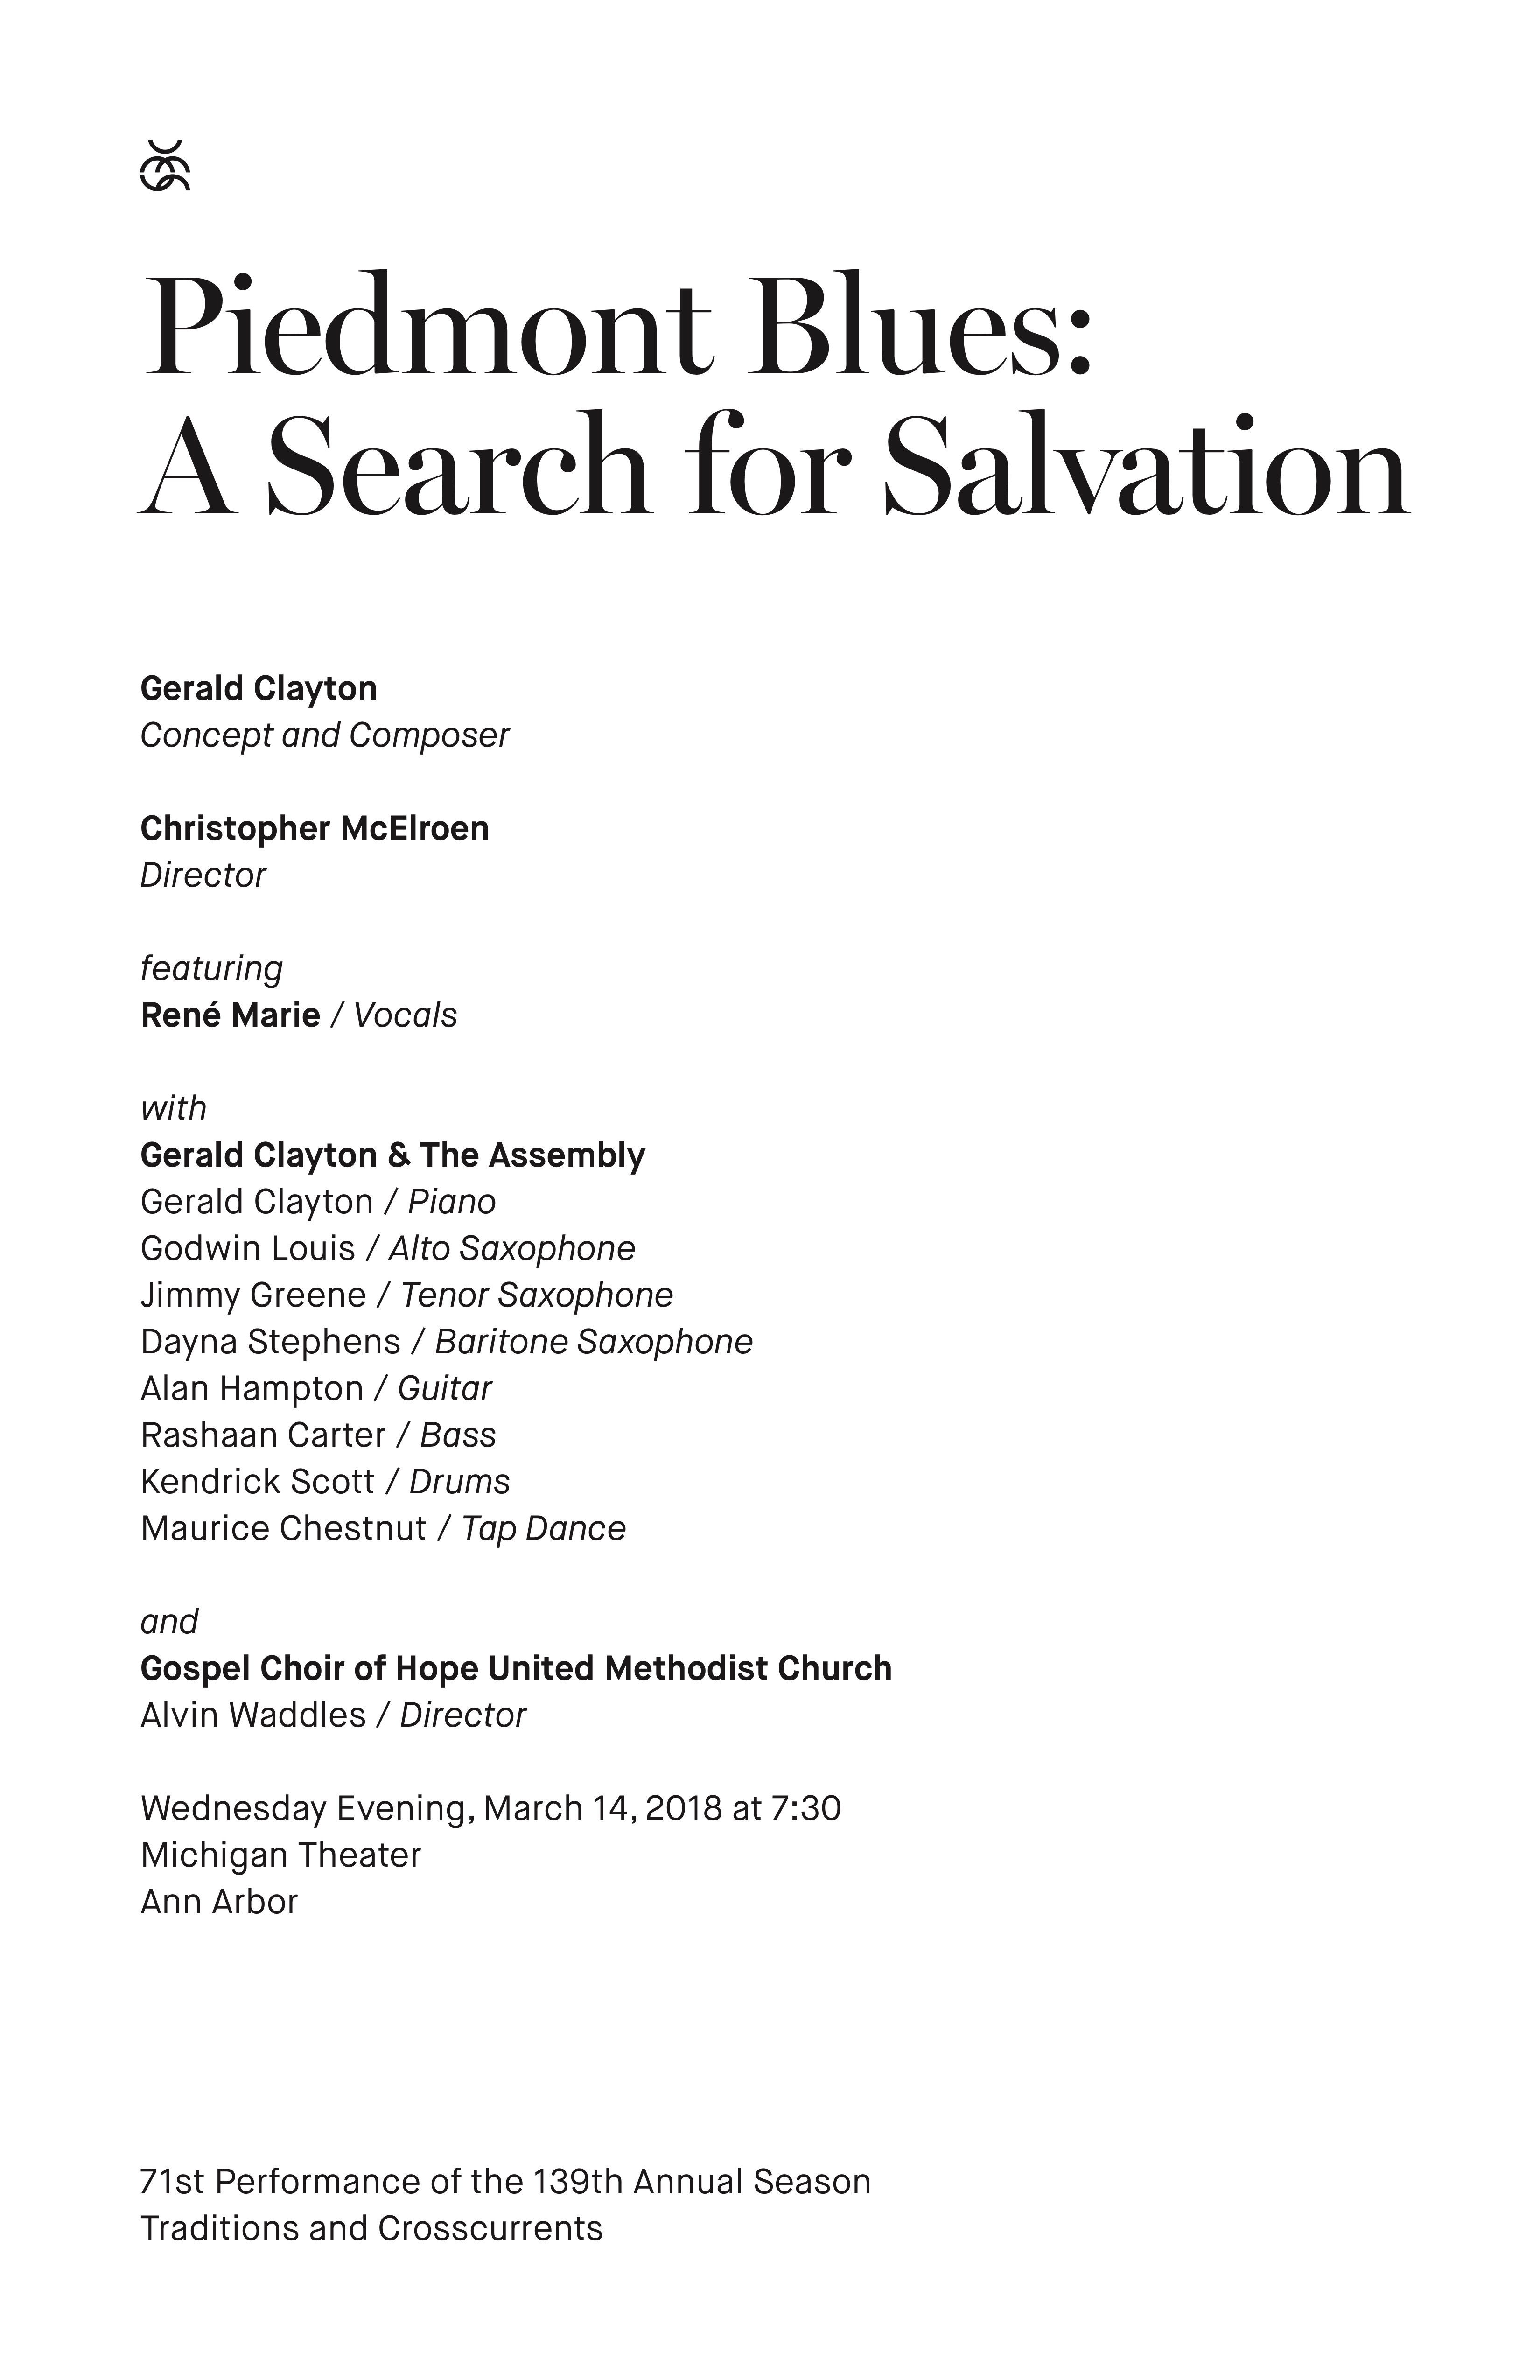 UMS Concert Program, March 14, 2018 - Piedmont Blues:  A Search for Salvation image